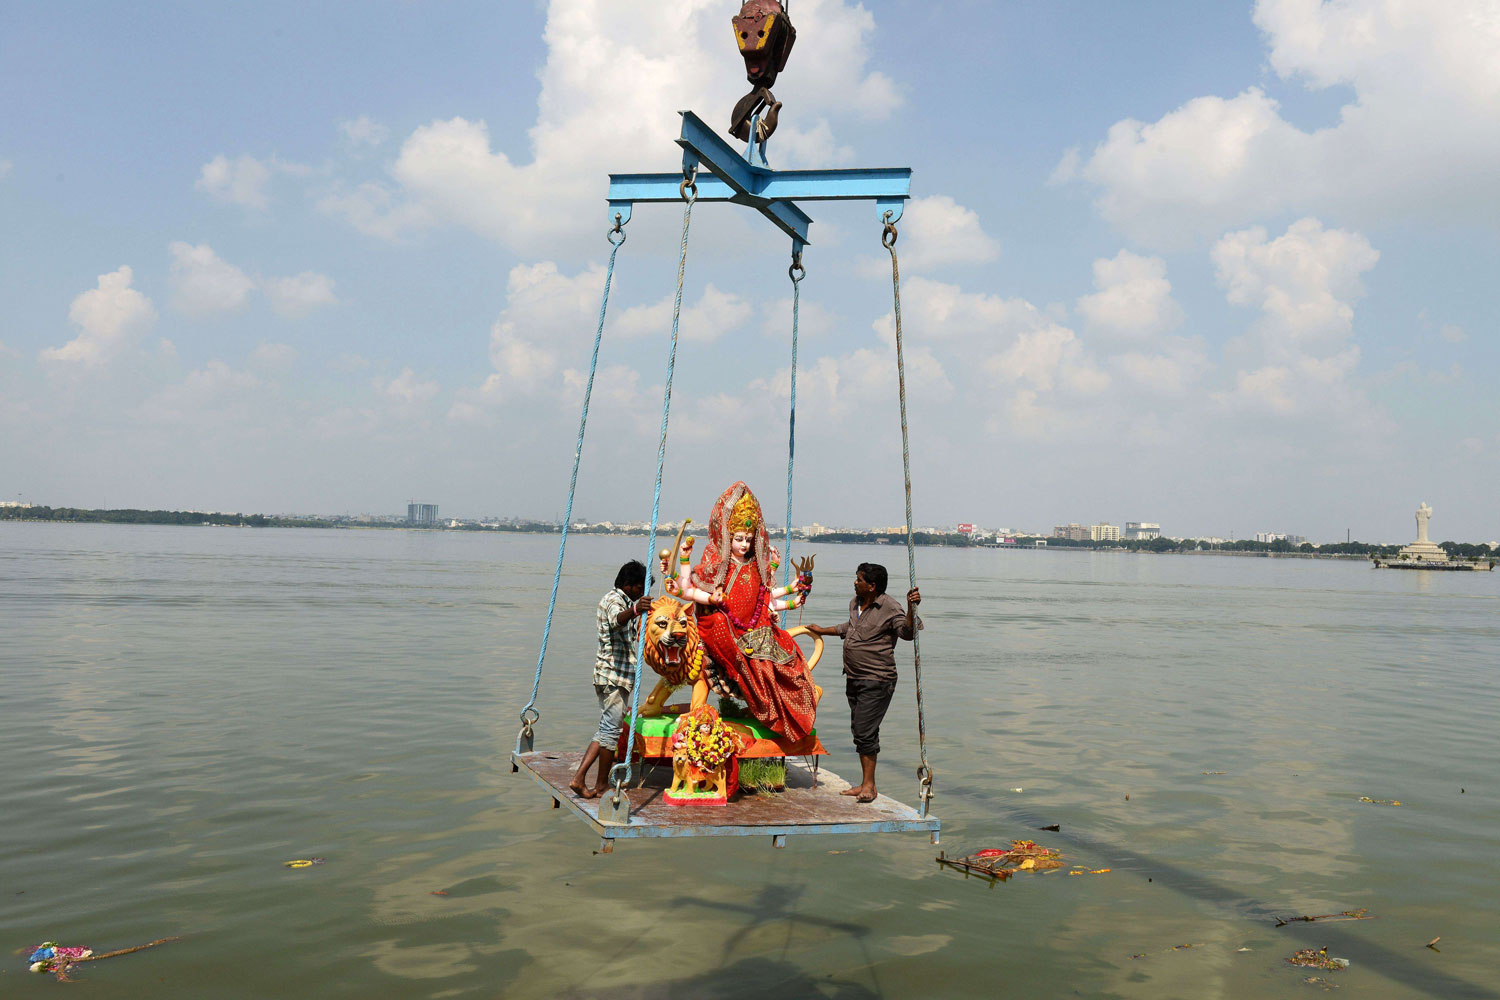 Oct. 14, 2013. Indian workers immerse an idol of Hindu goddess Durga in the Hussainsagar lake on the occasion of the Dussehra-Vijaya Dashami Festival in Hyderabad. The annual Hindu festival worships the Goddess Durga, who symbolizes power and triumph of good over evil in Hindu mythology.